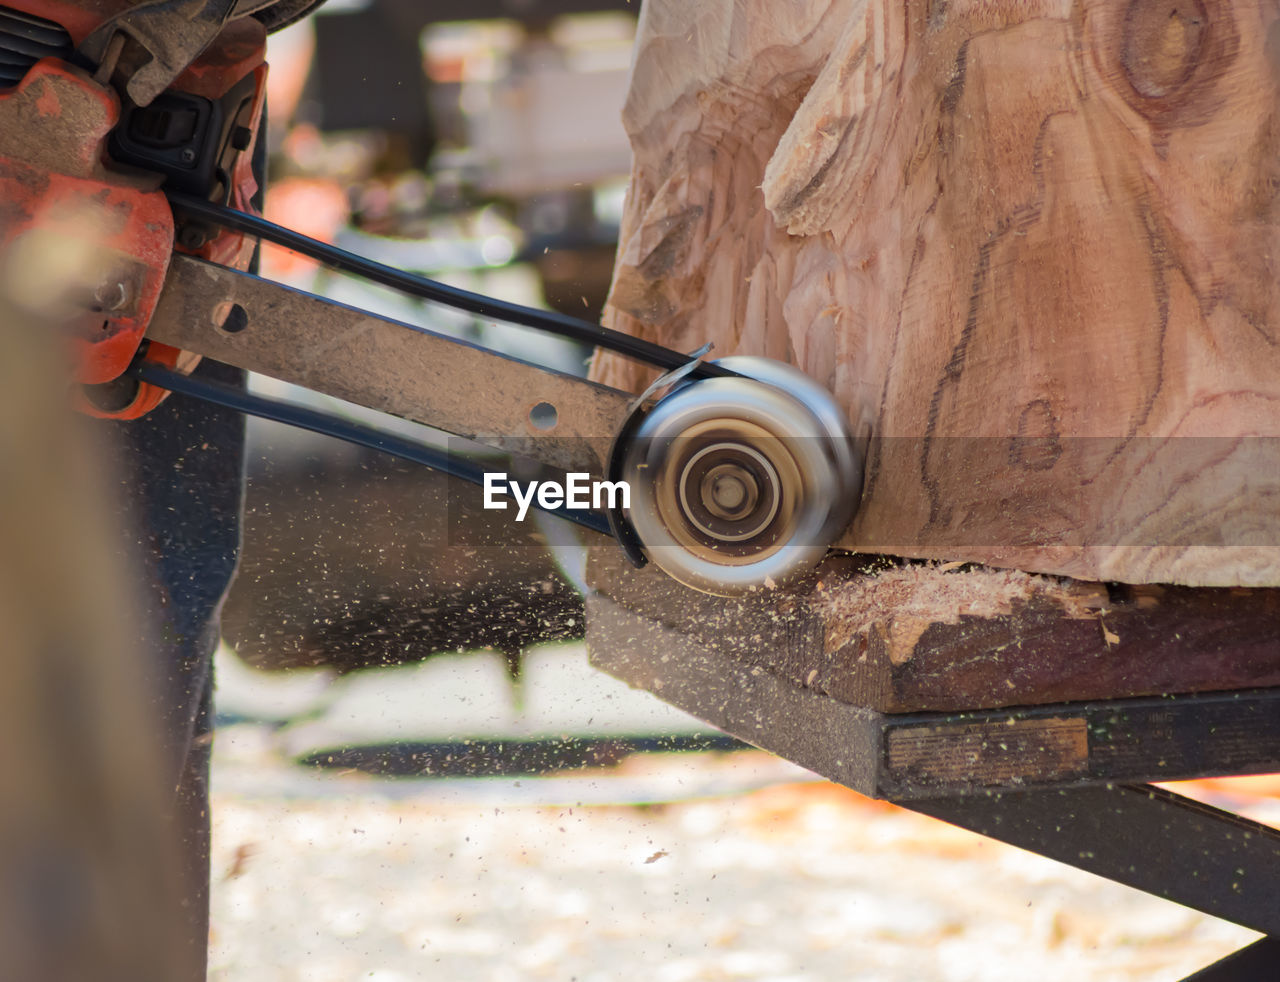 Cropped image of man using equipment on wooden sculpture